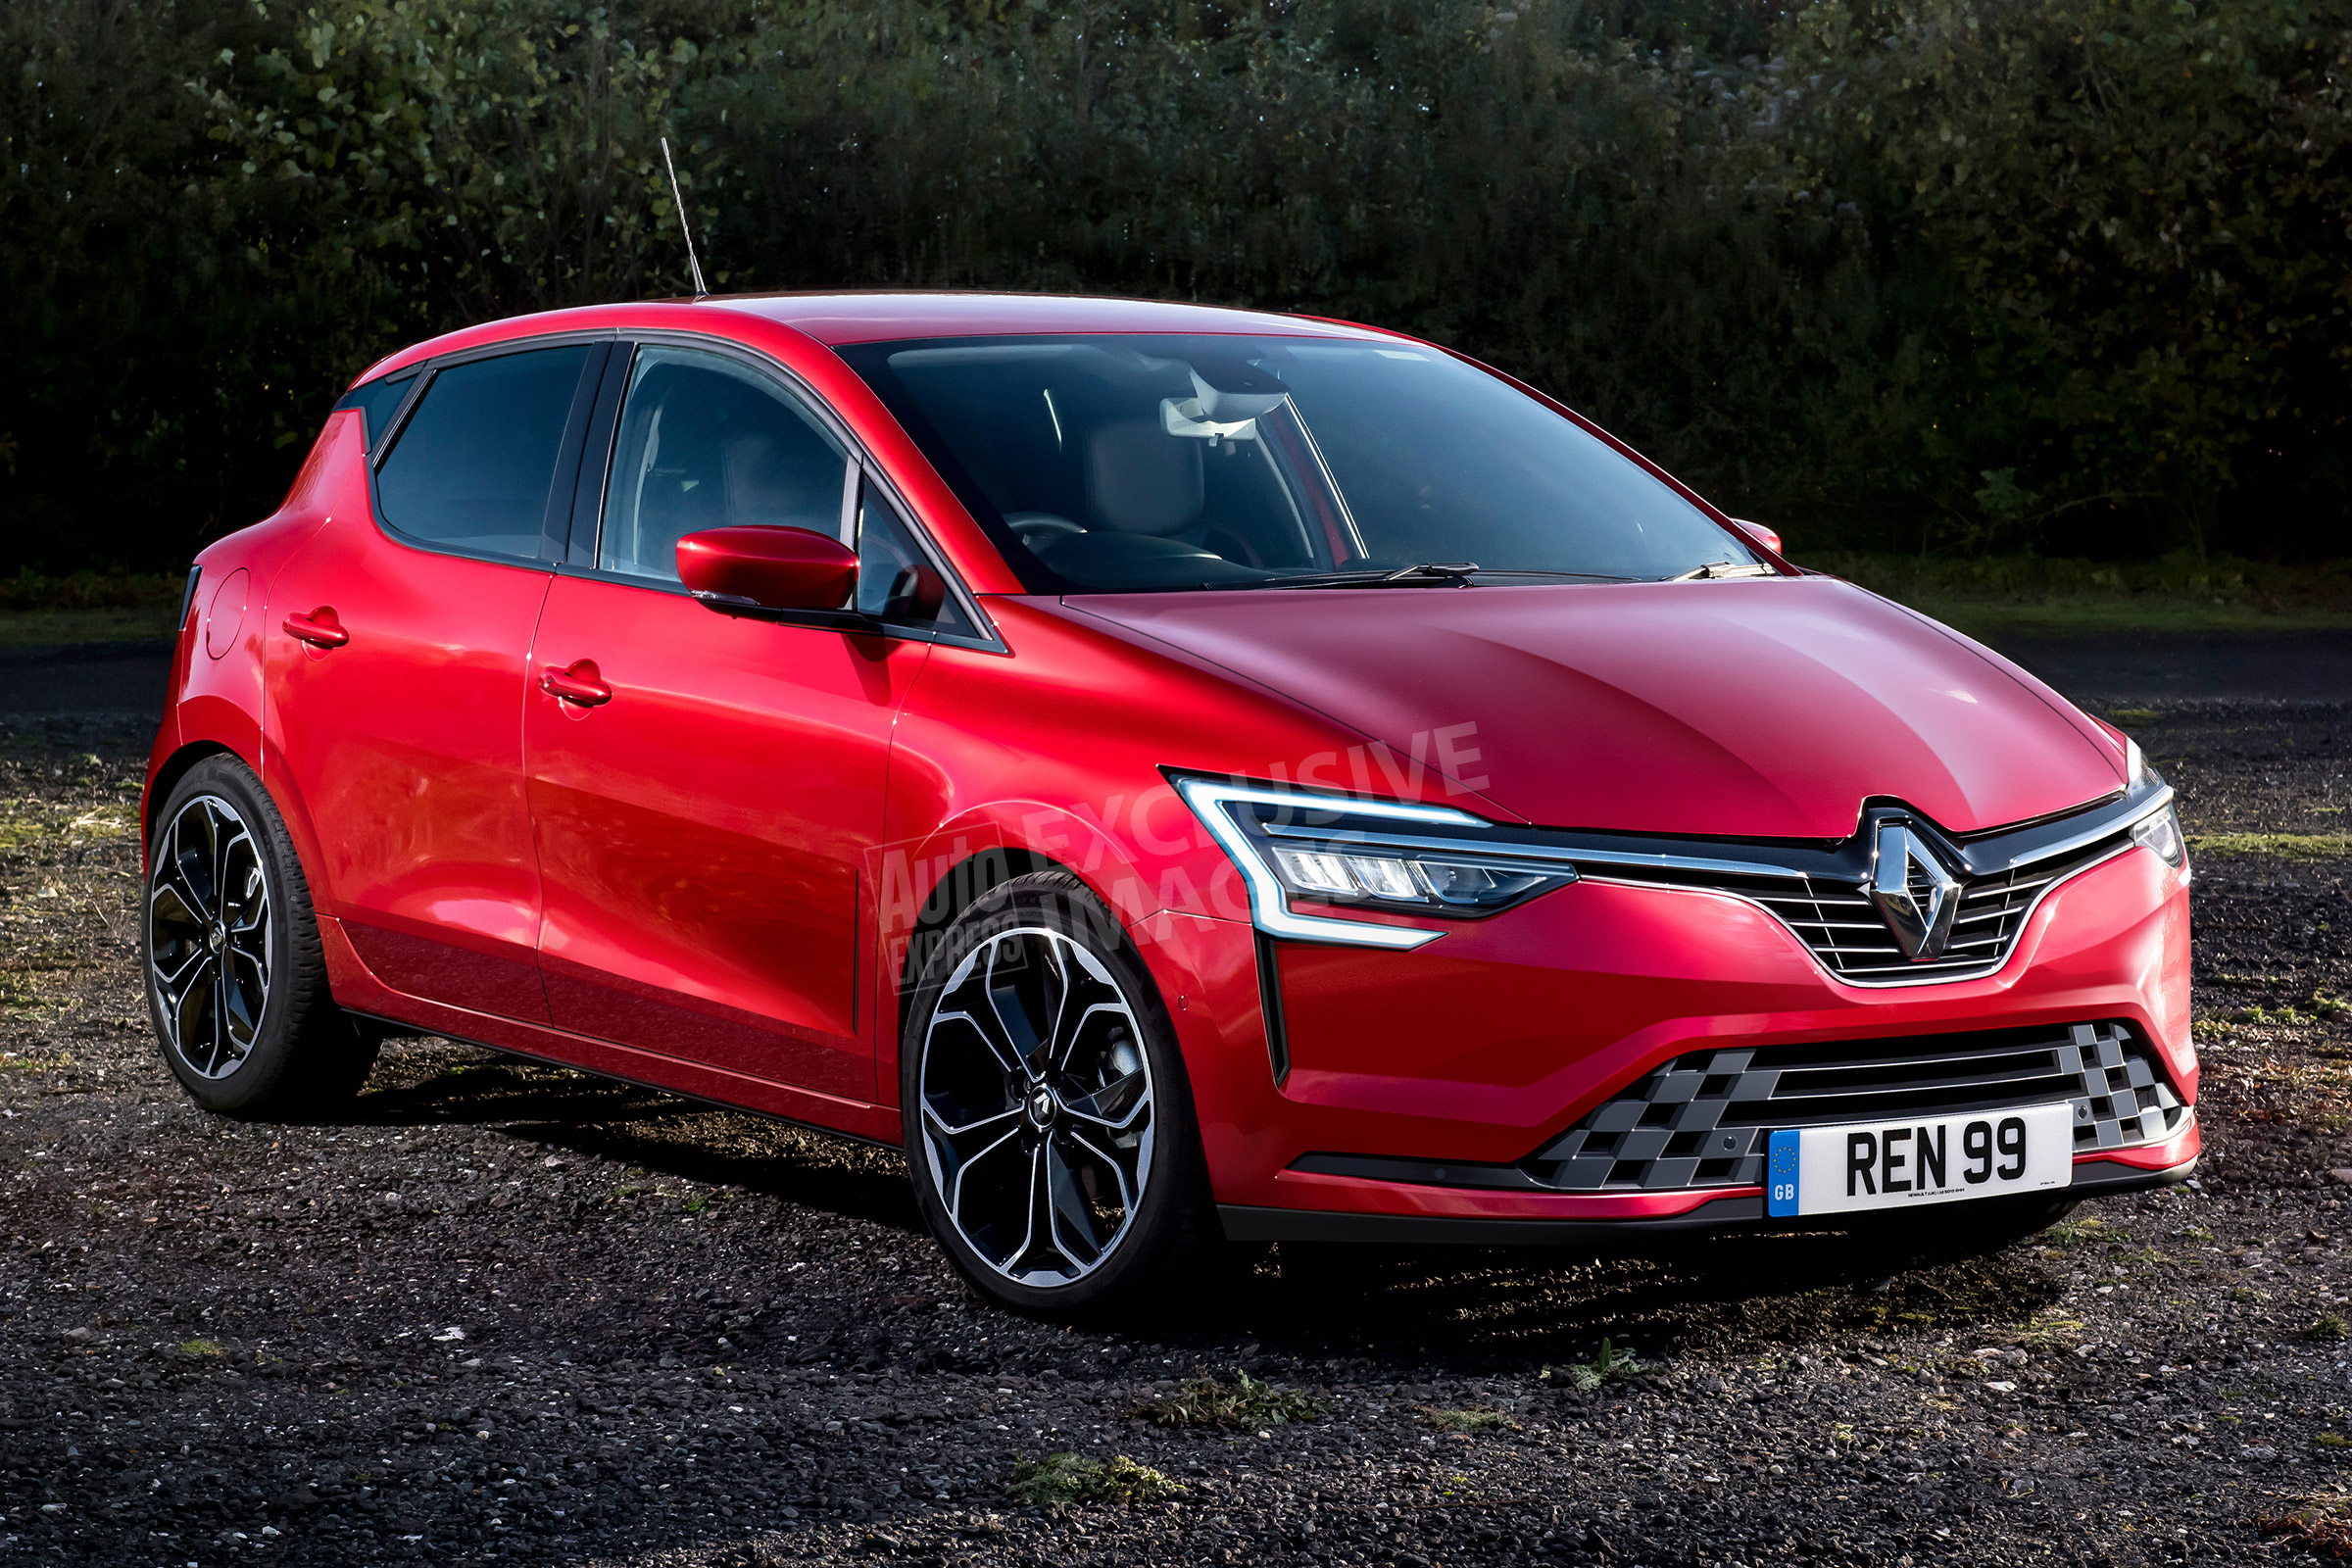 17 All New 2020 Renault Megane SUV Spy Shoot